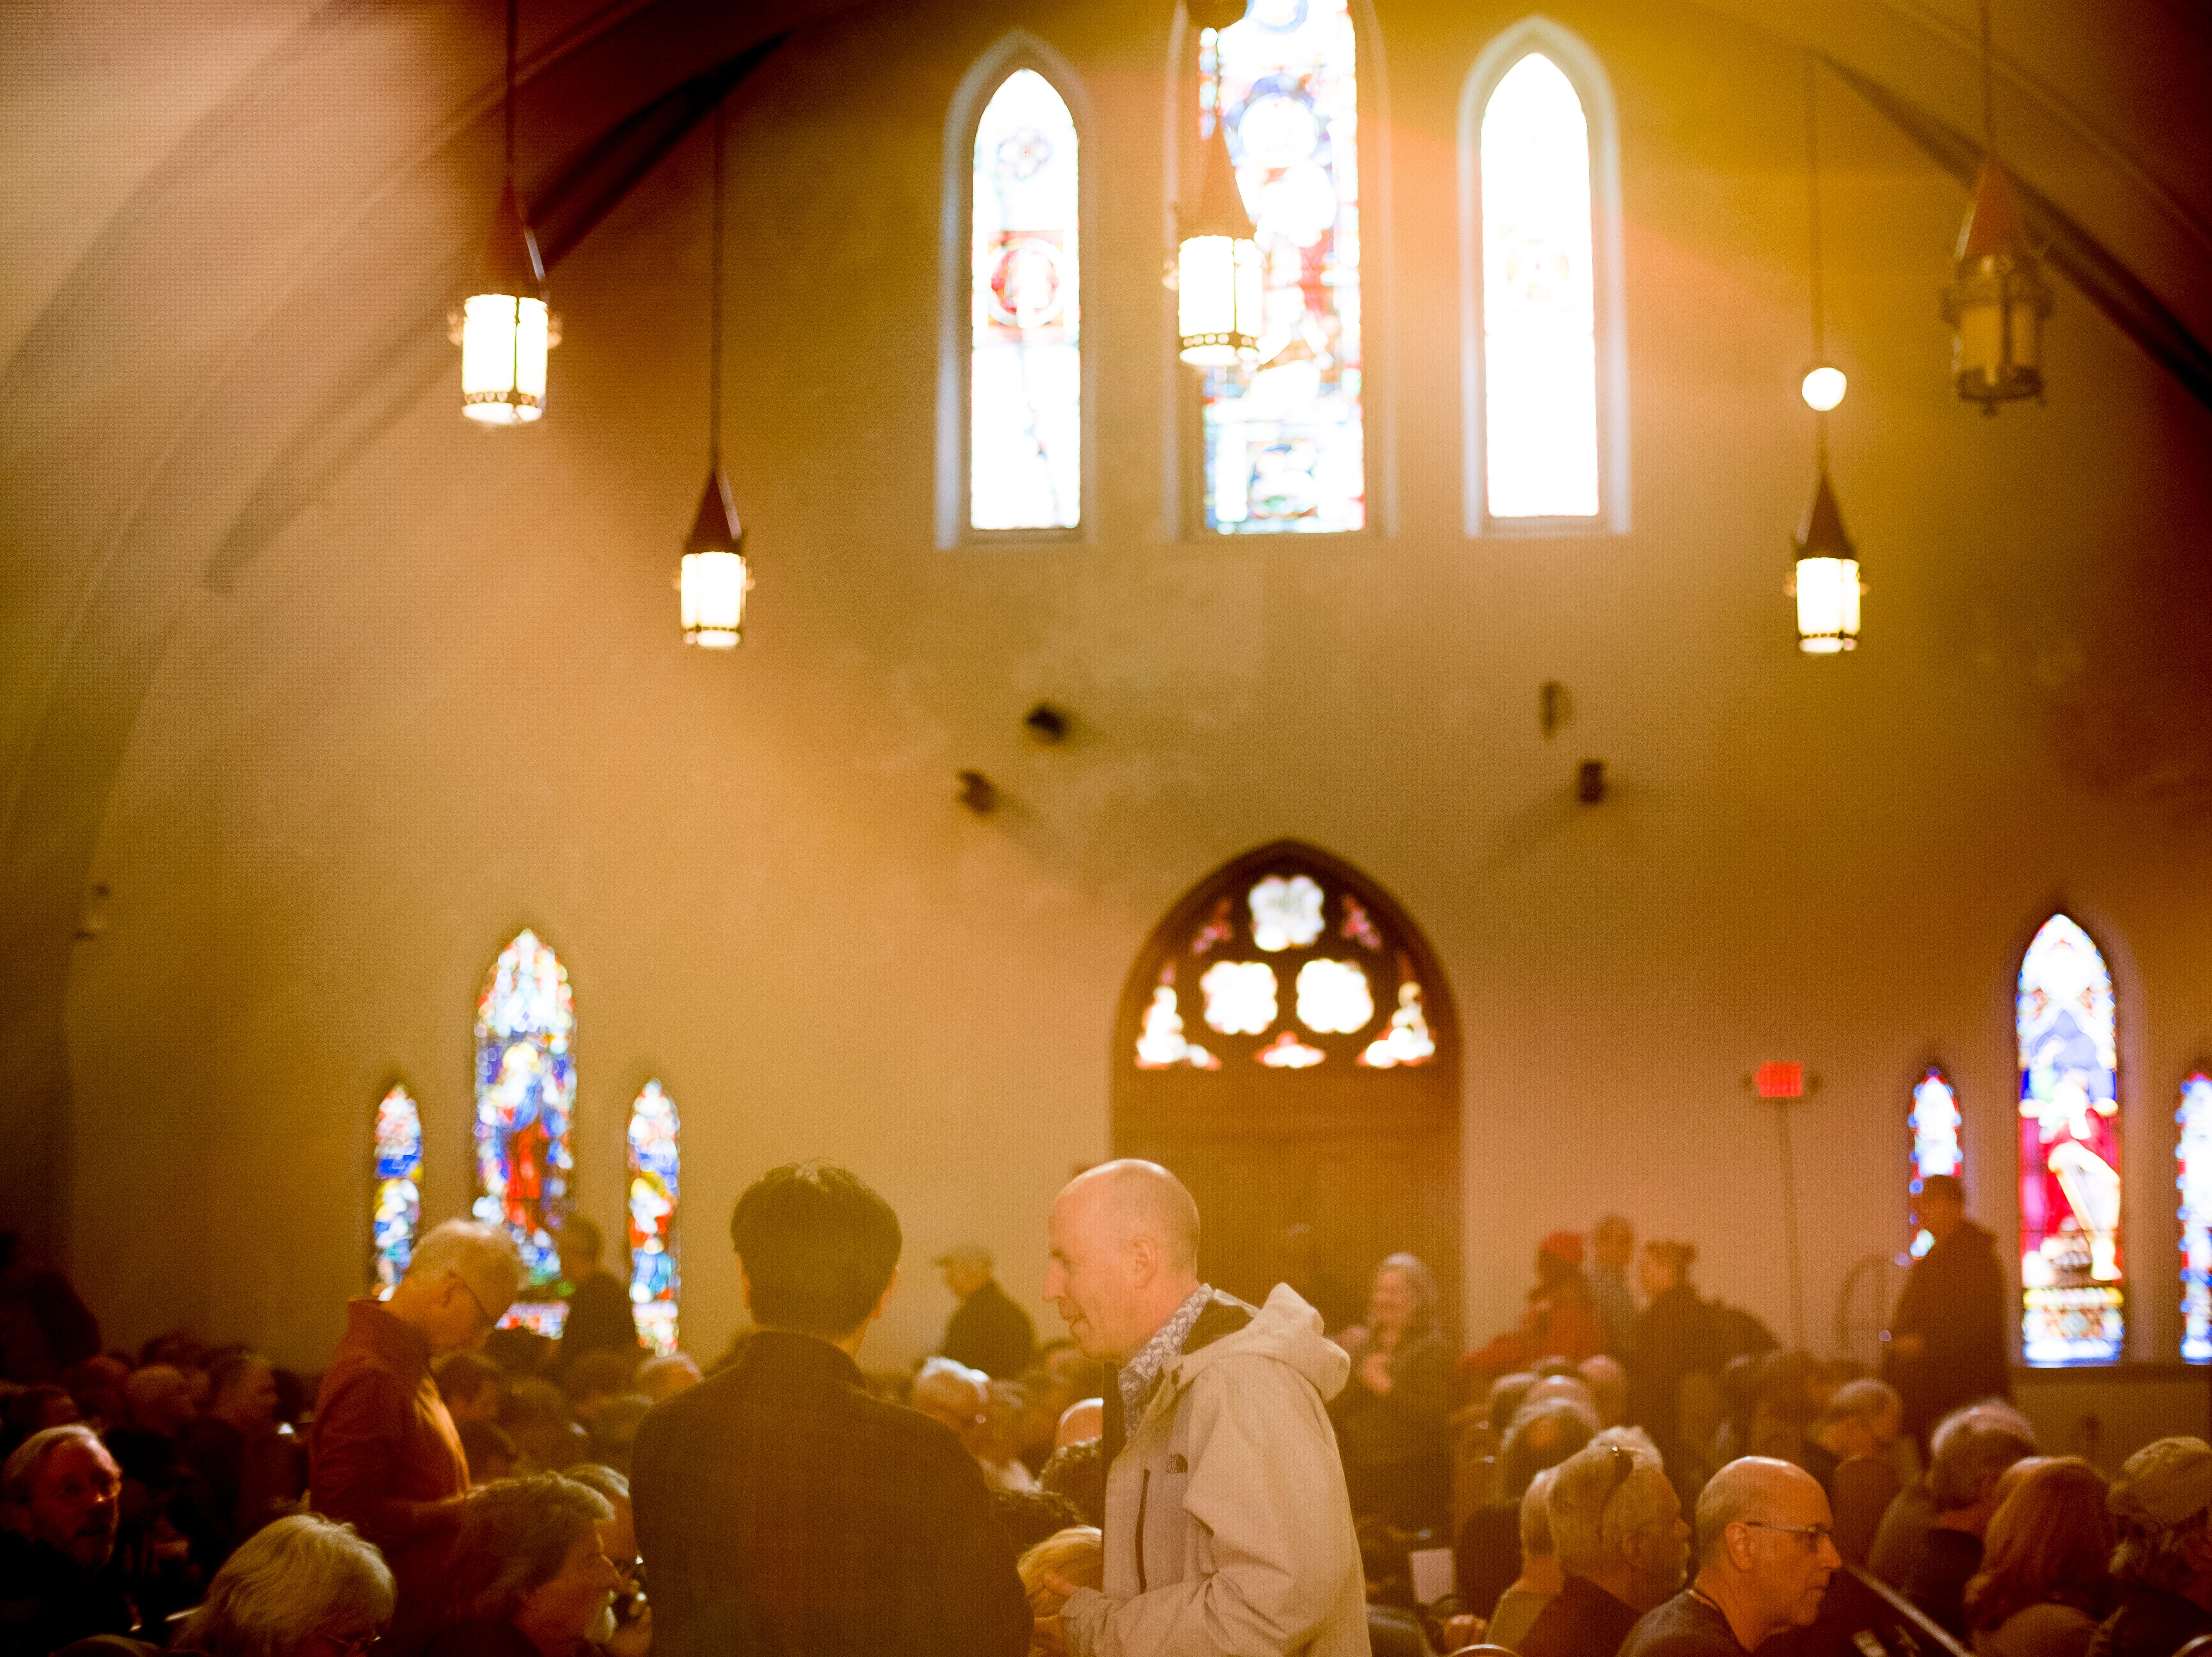 Fans gather to listen to Ralph Towner at St. John's Episcopal Church during Big Ears Festival 2019 in Knoxville, Tennessee on Friday, March 22, 2019.